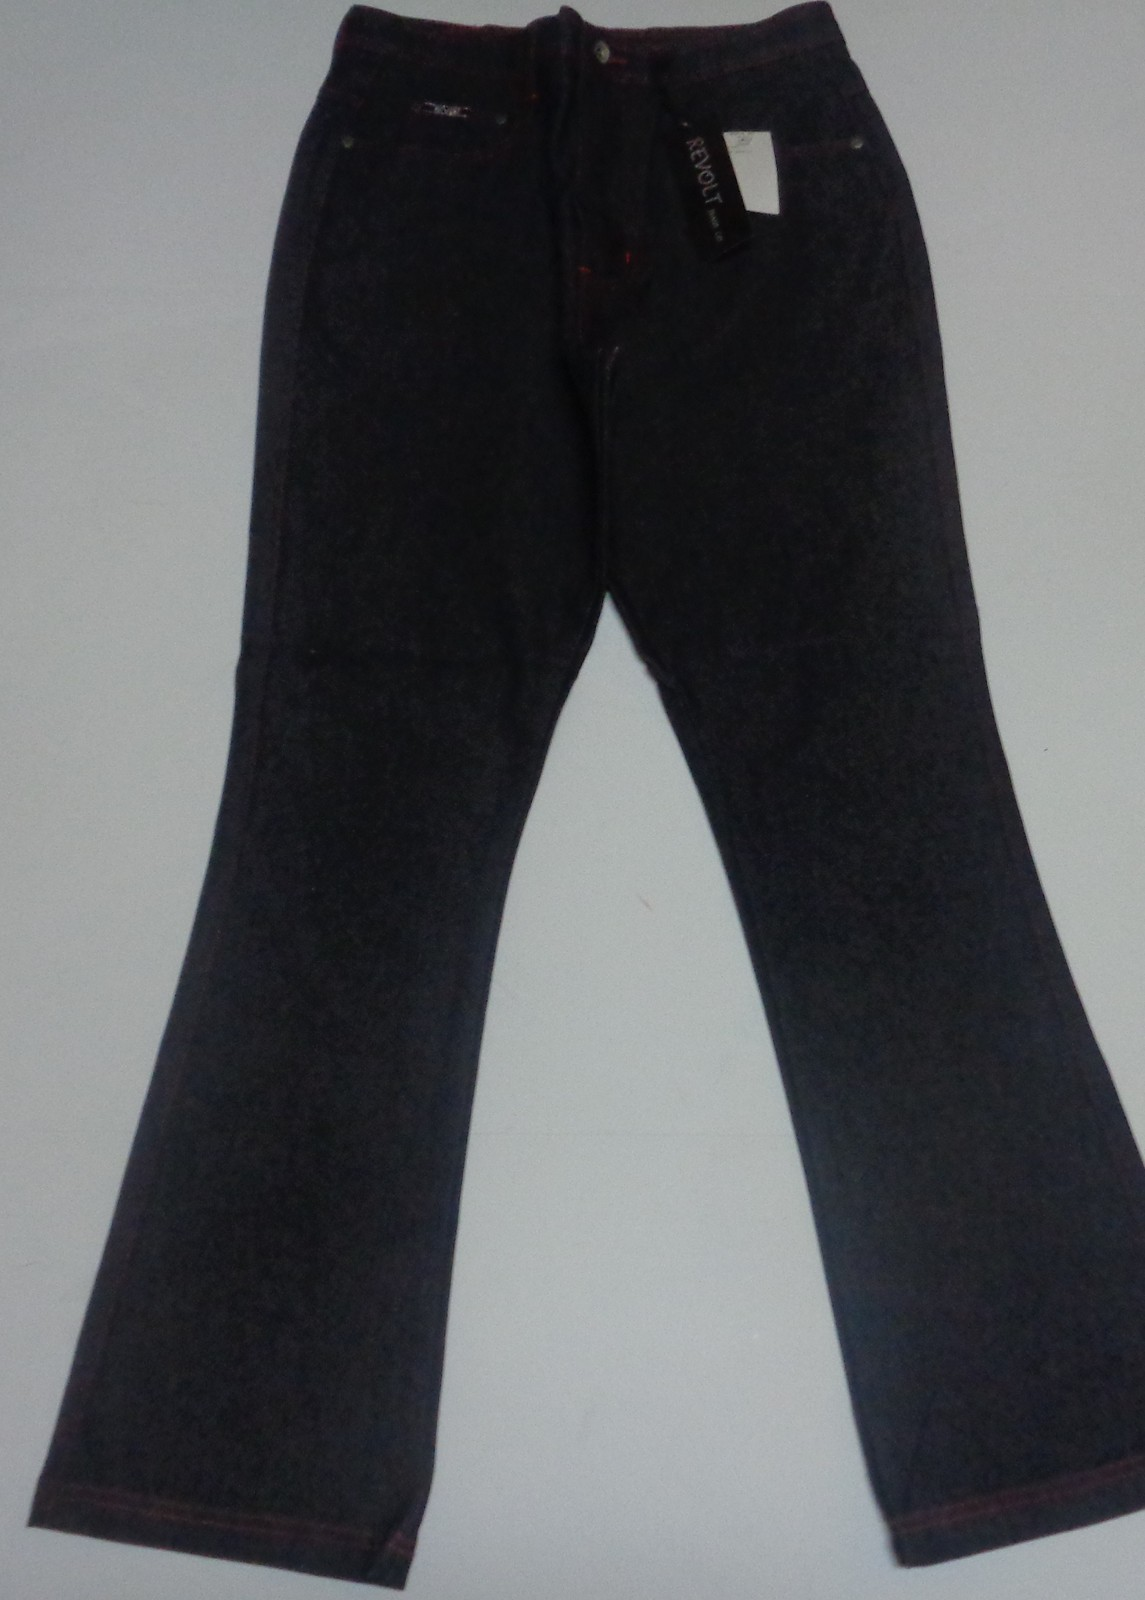 Women's Revolt Boot Cut Jeans Black Sz 14 Embroidered Pockets NWT